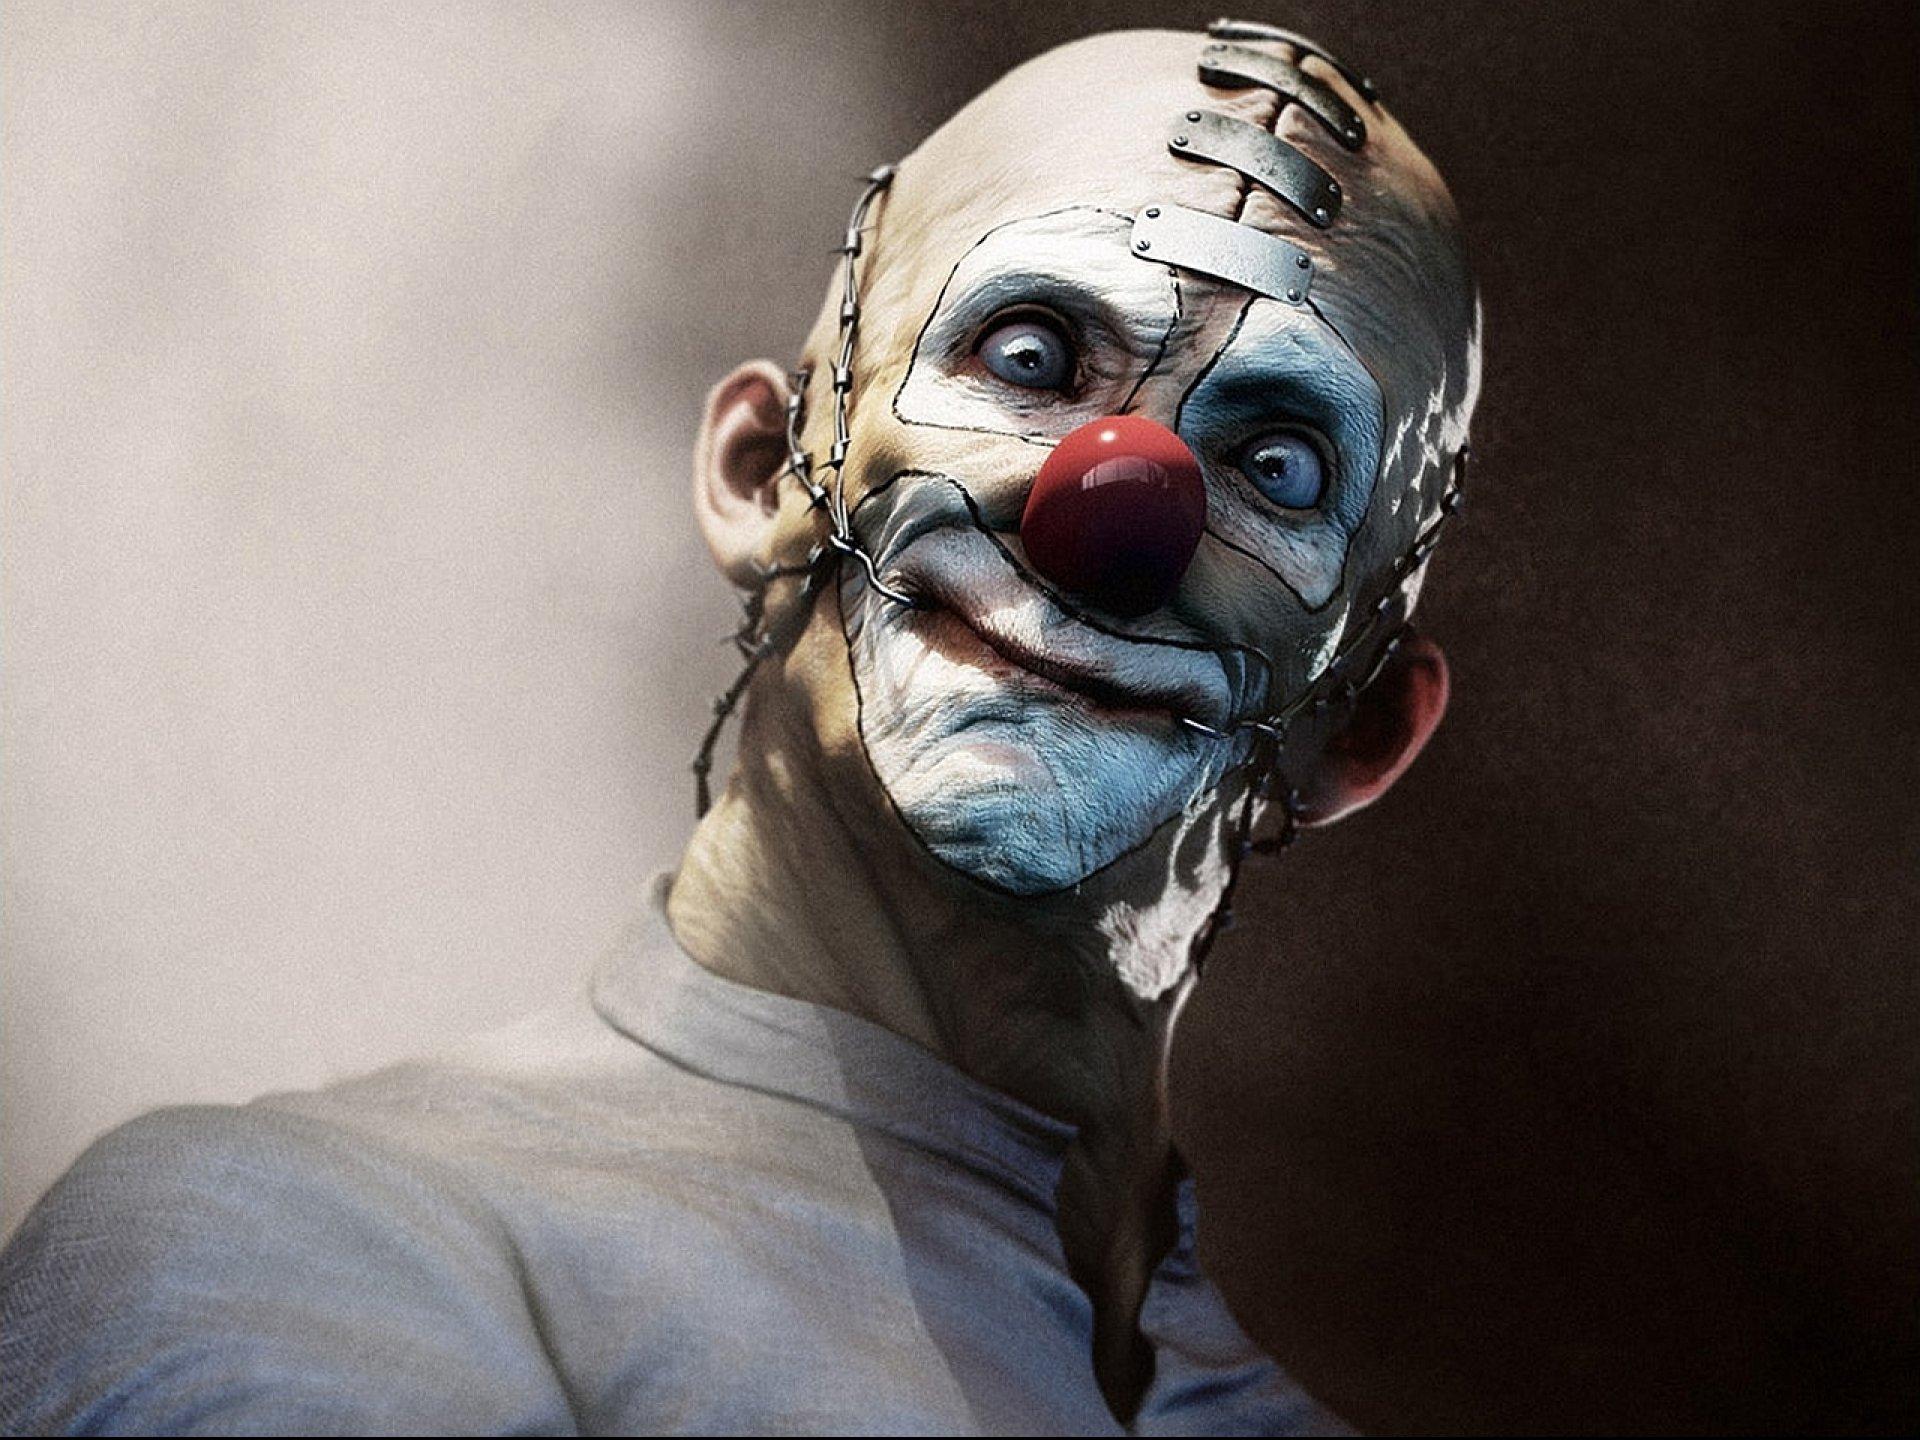 Dark horror evil clown art artwork f wallpaper 1920x1440 693581 1920x1440